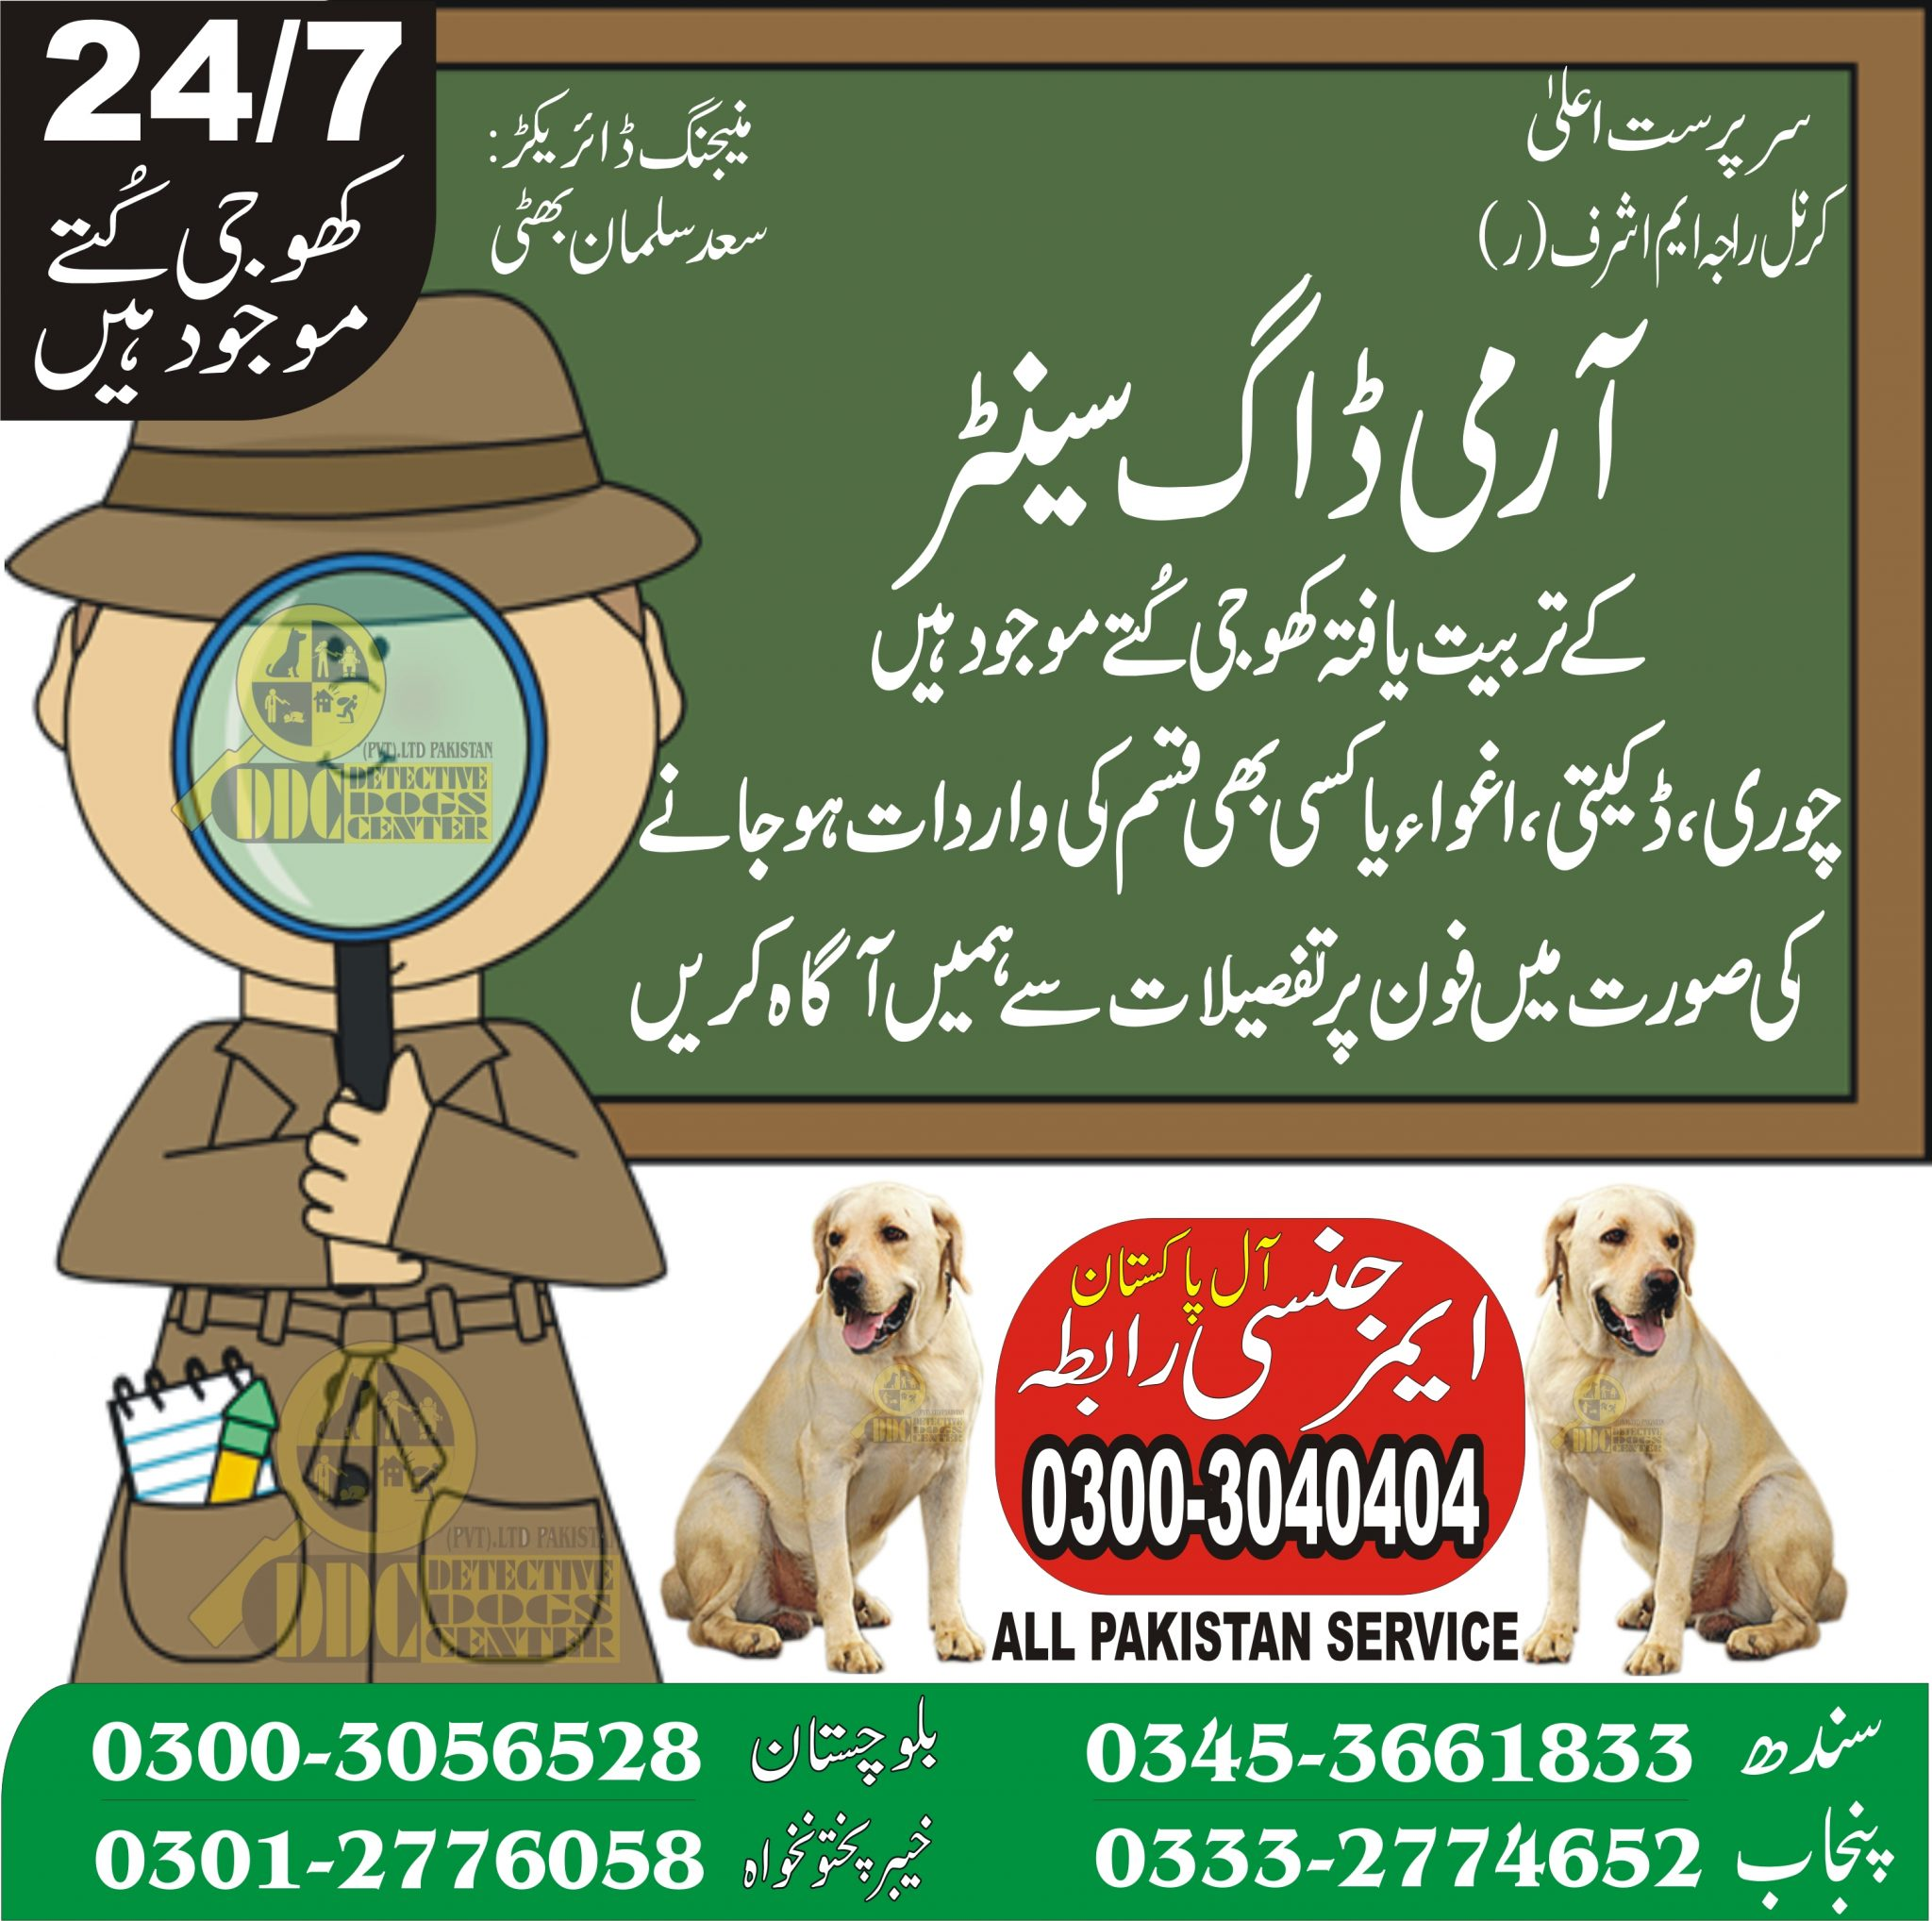 Army Dog Center Discount in case Booking 03008378186 Offer 2021